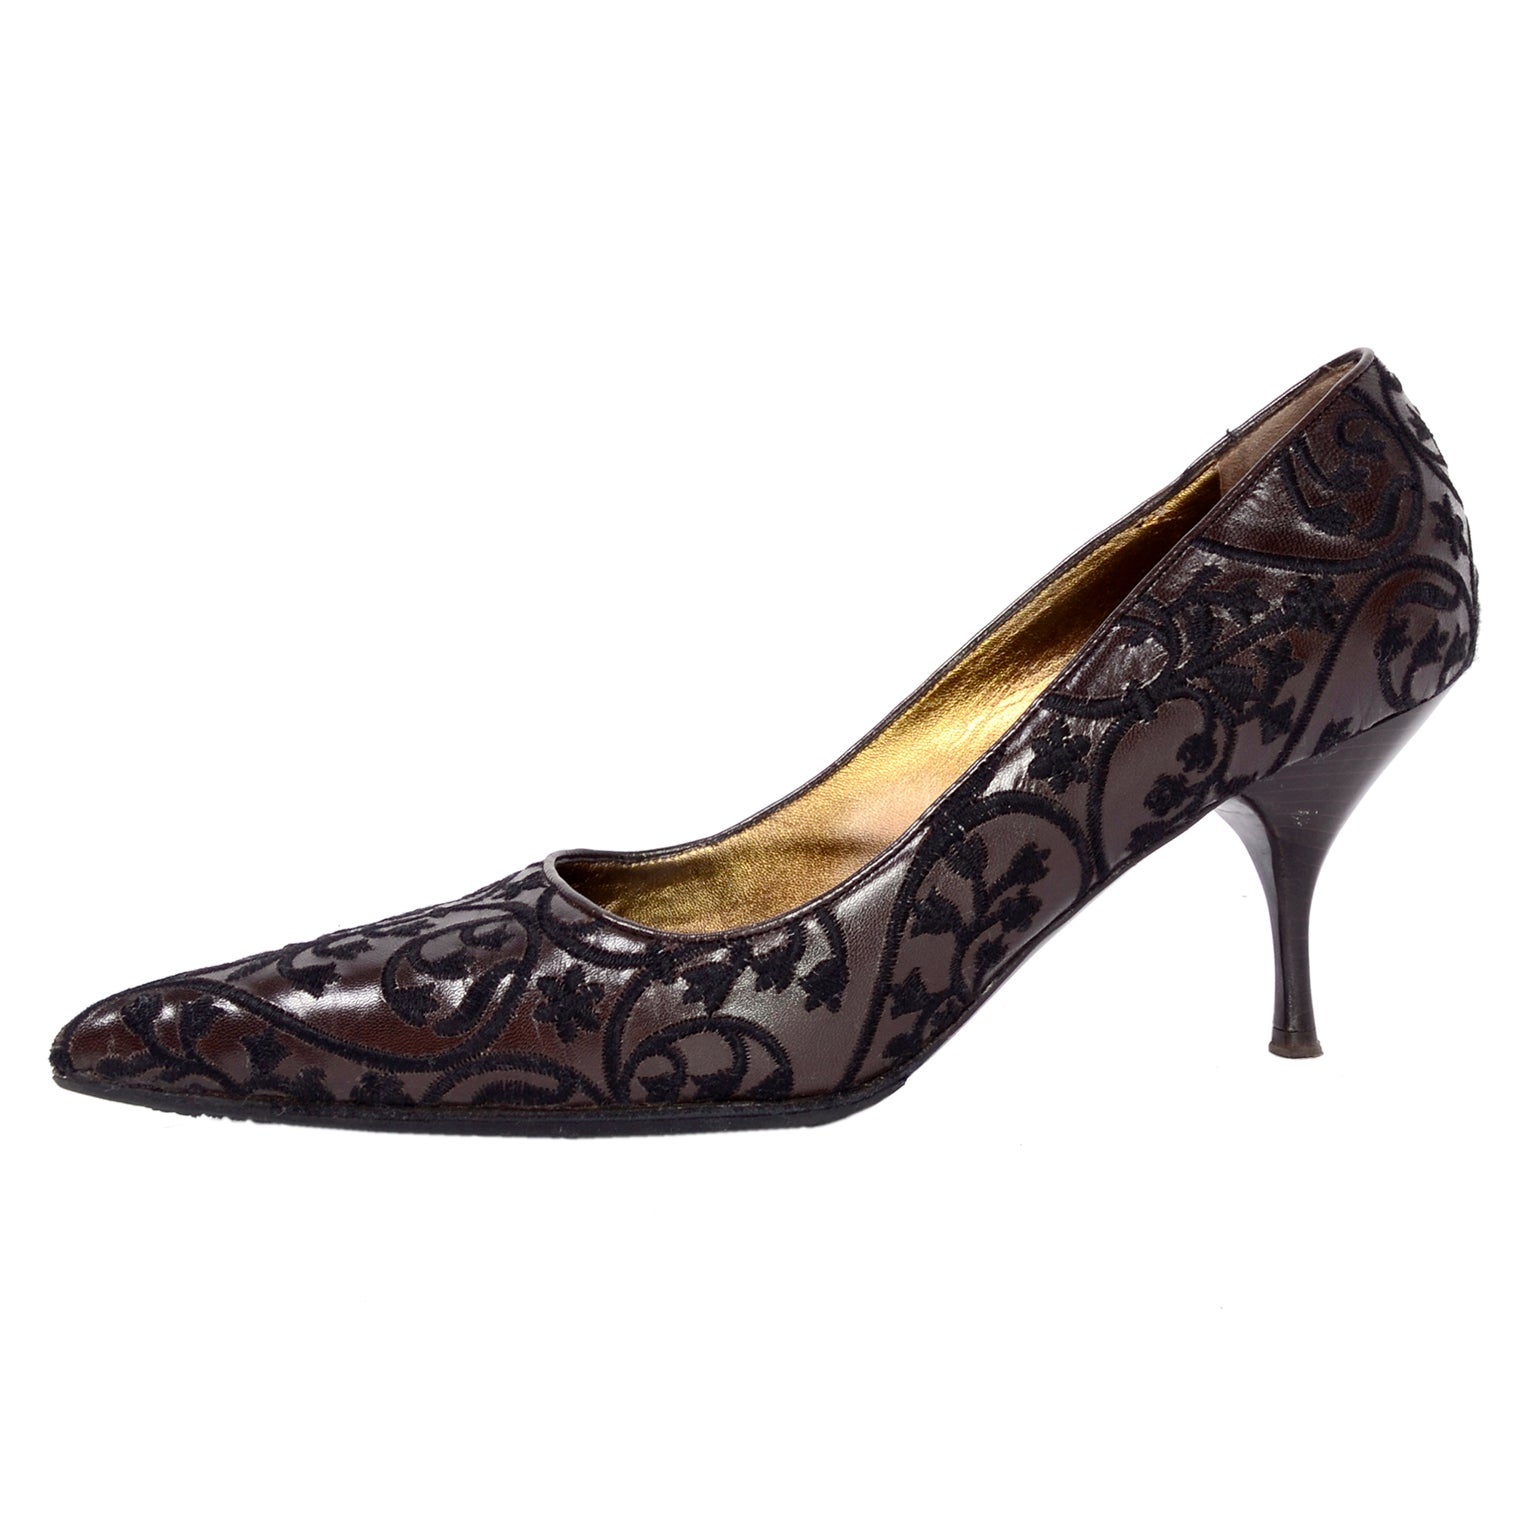 "Prada Embroidered Shoes in Dark Brown Leather Size 37.5 W 3"" Heels"